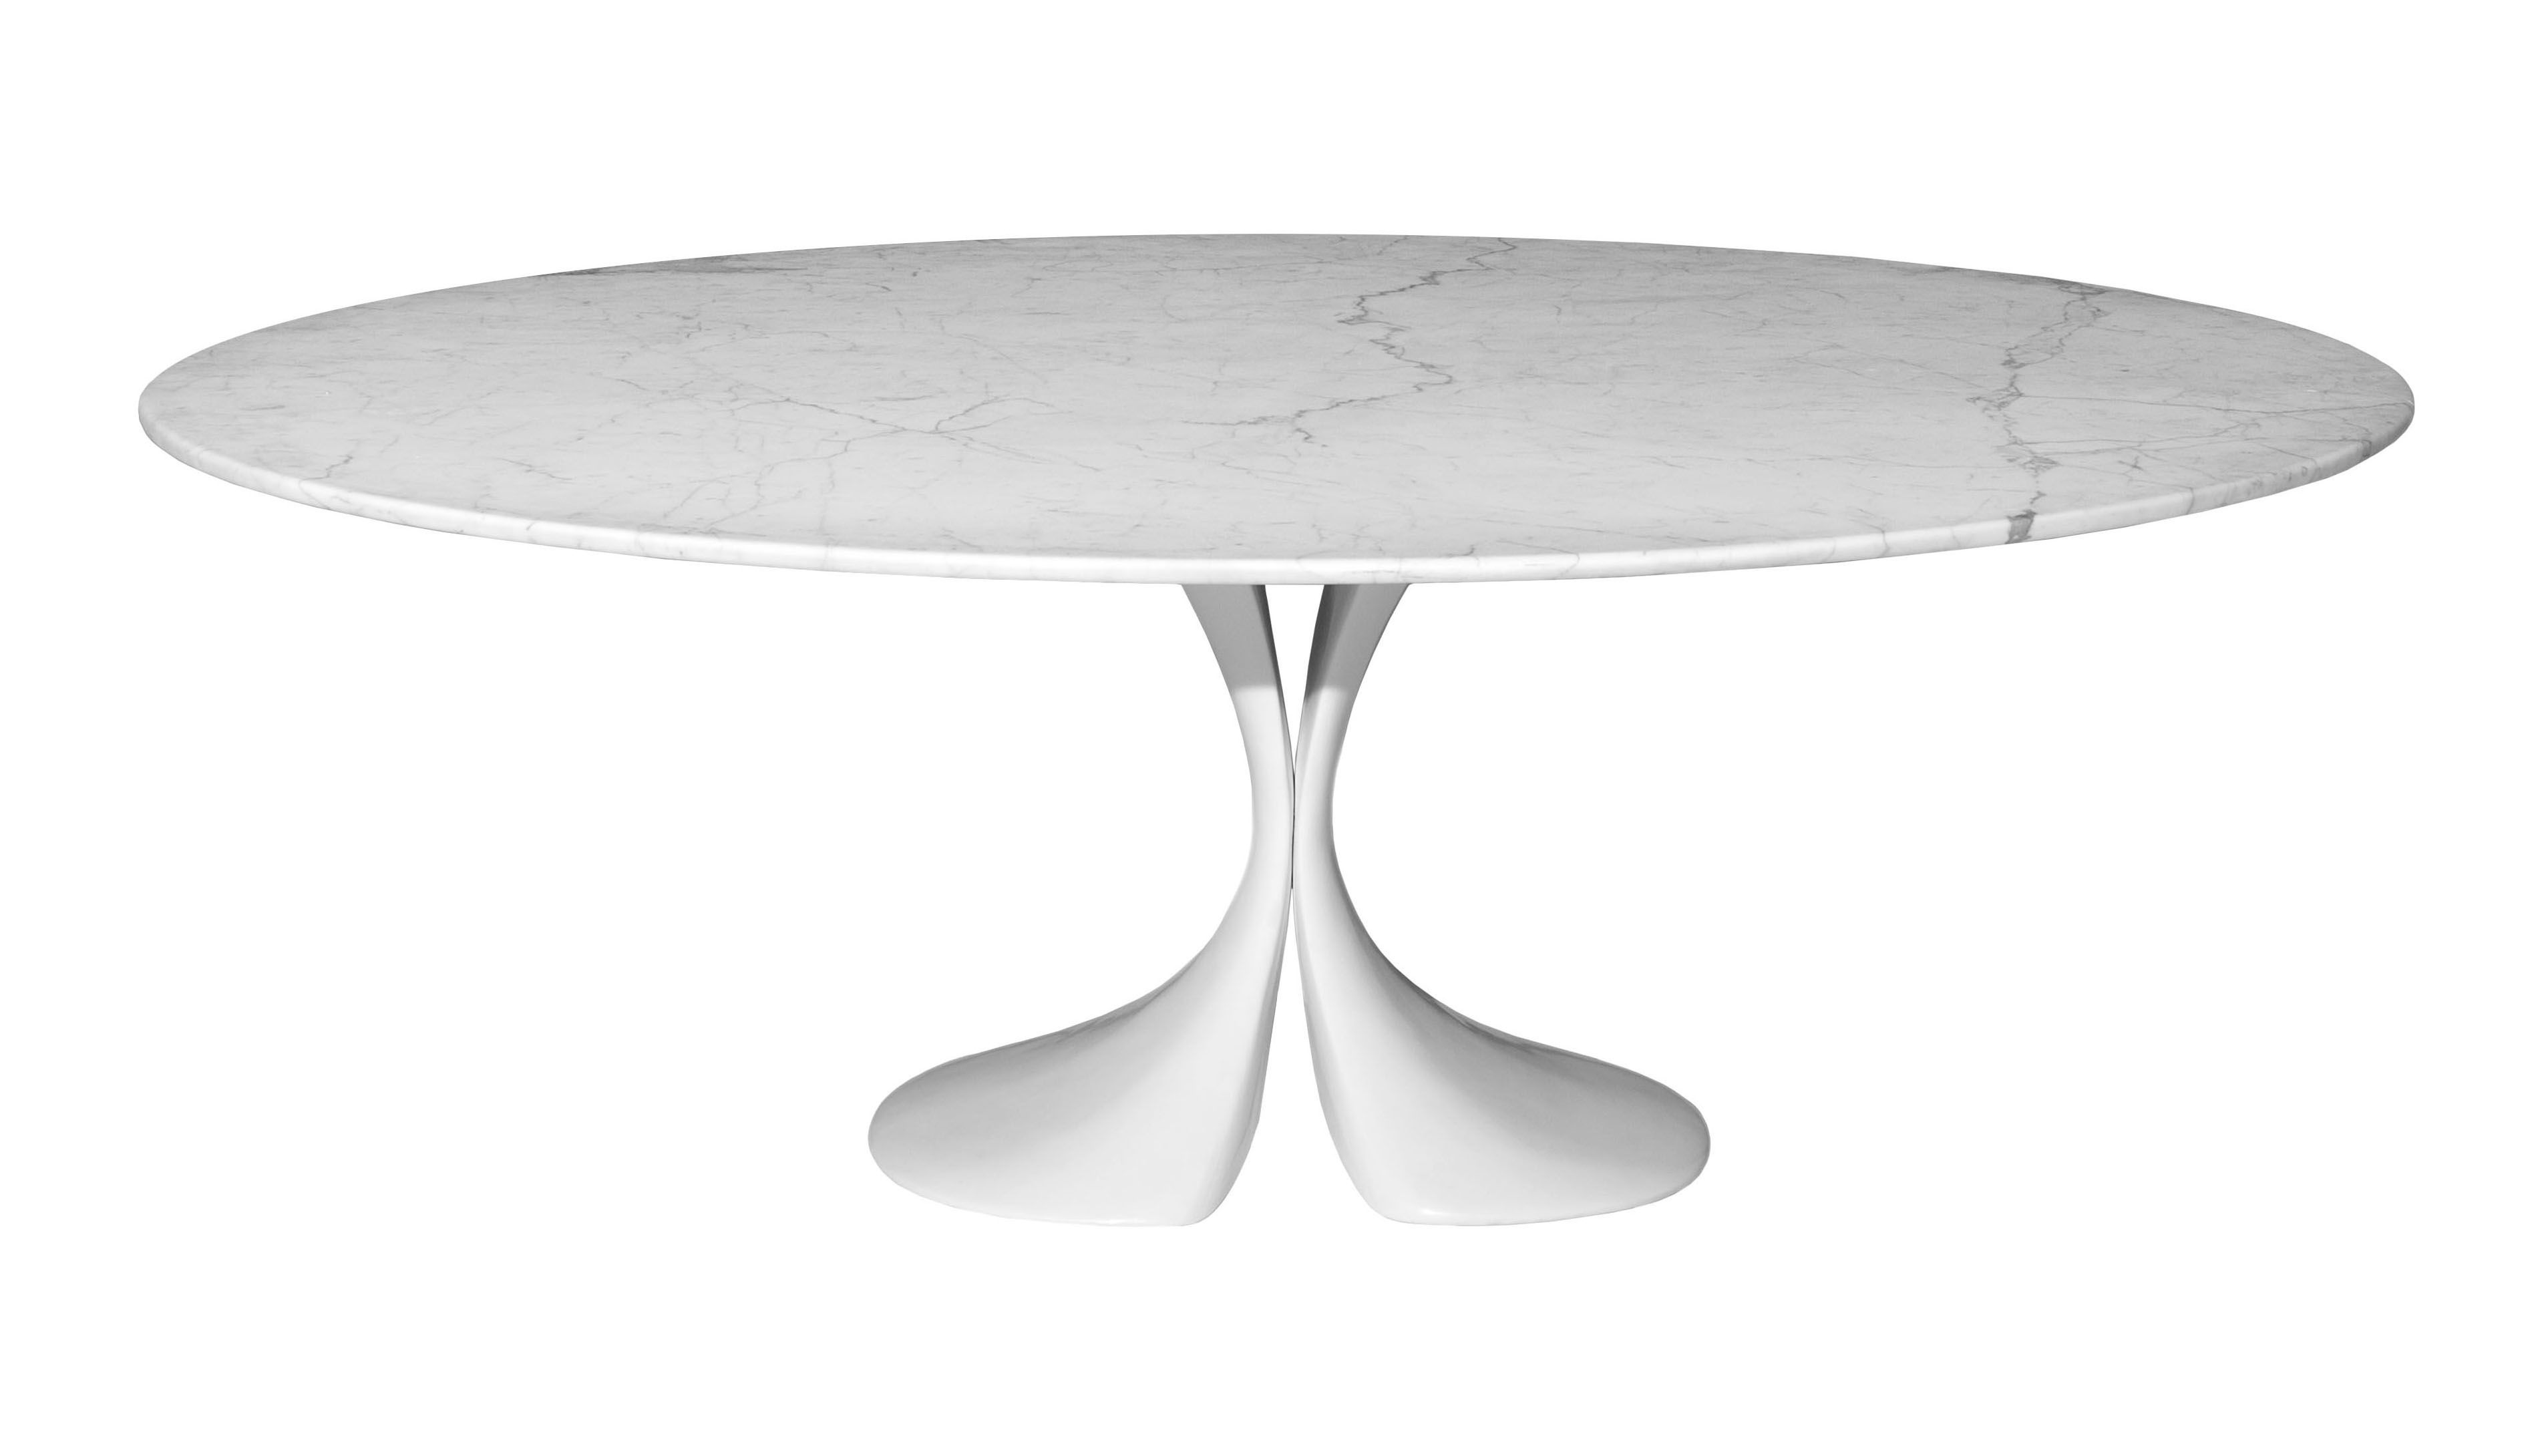 Furniture - Dining Tables - Didymos Oval table - 180 x 126 cm - Marble top by Driade - White marble top - Cristalplant, Marble